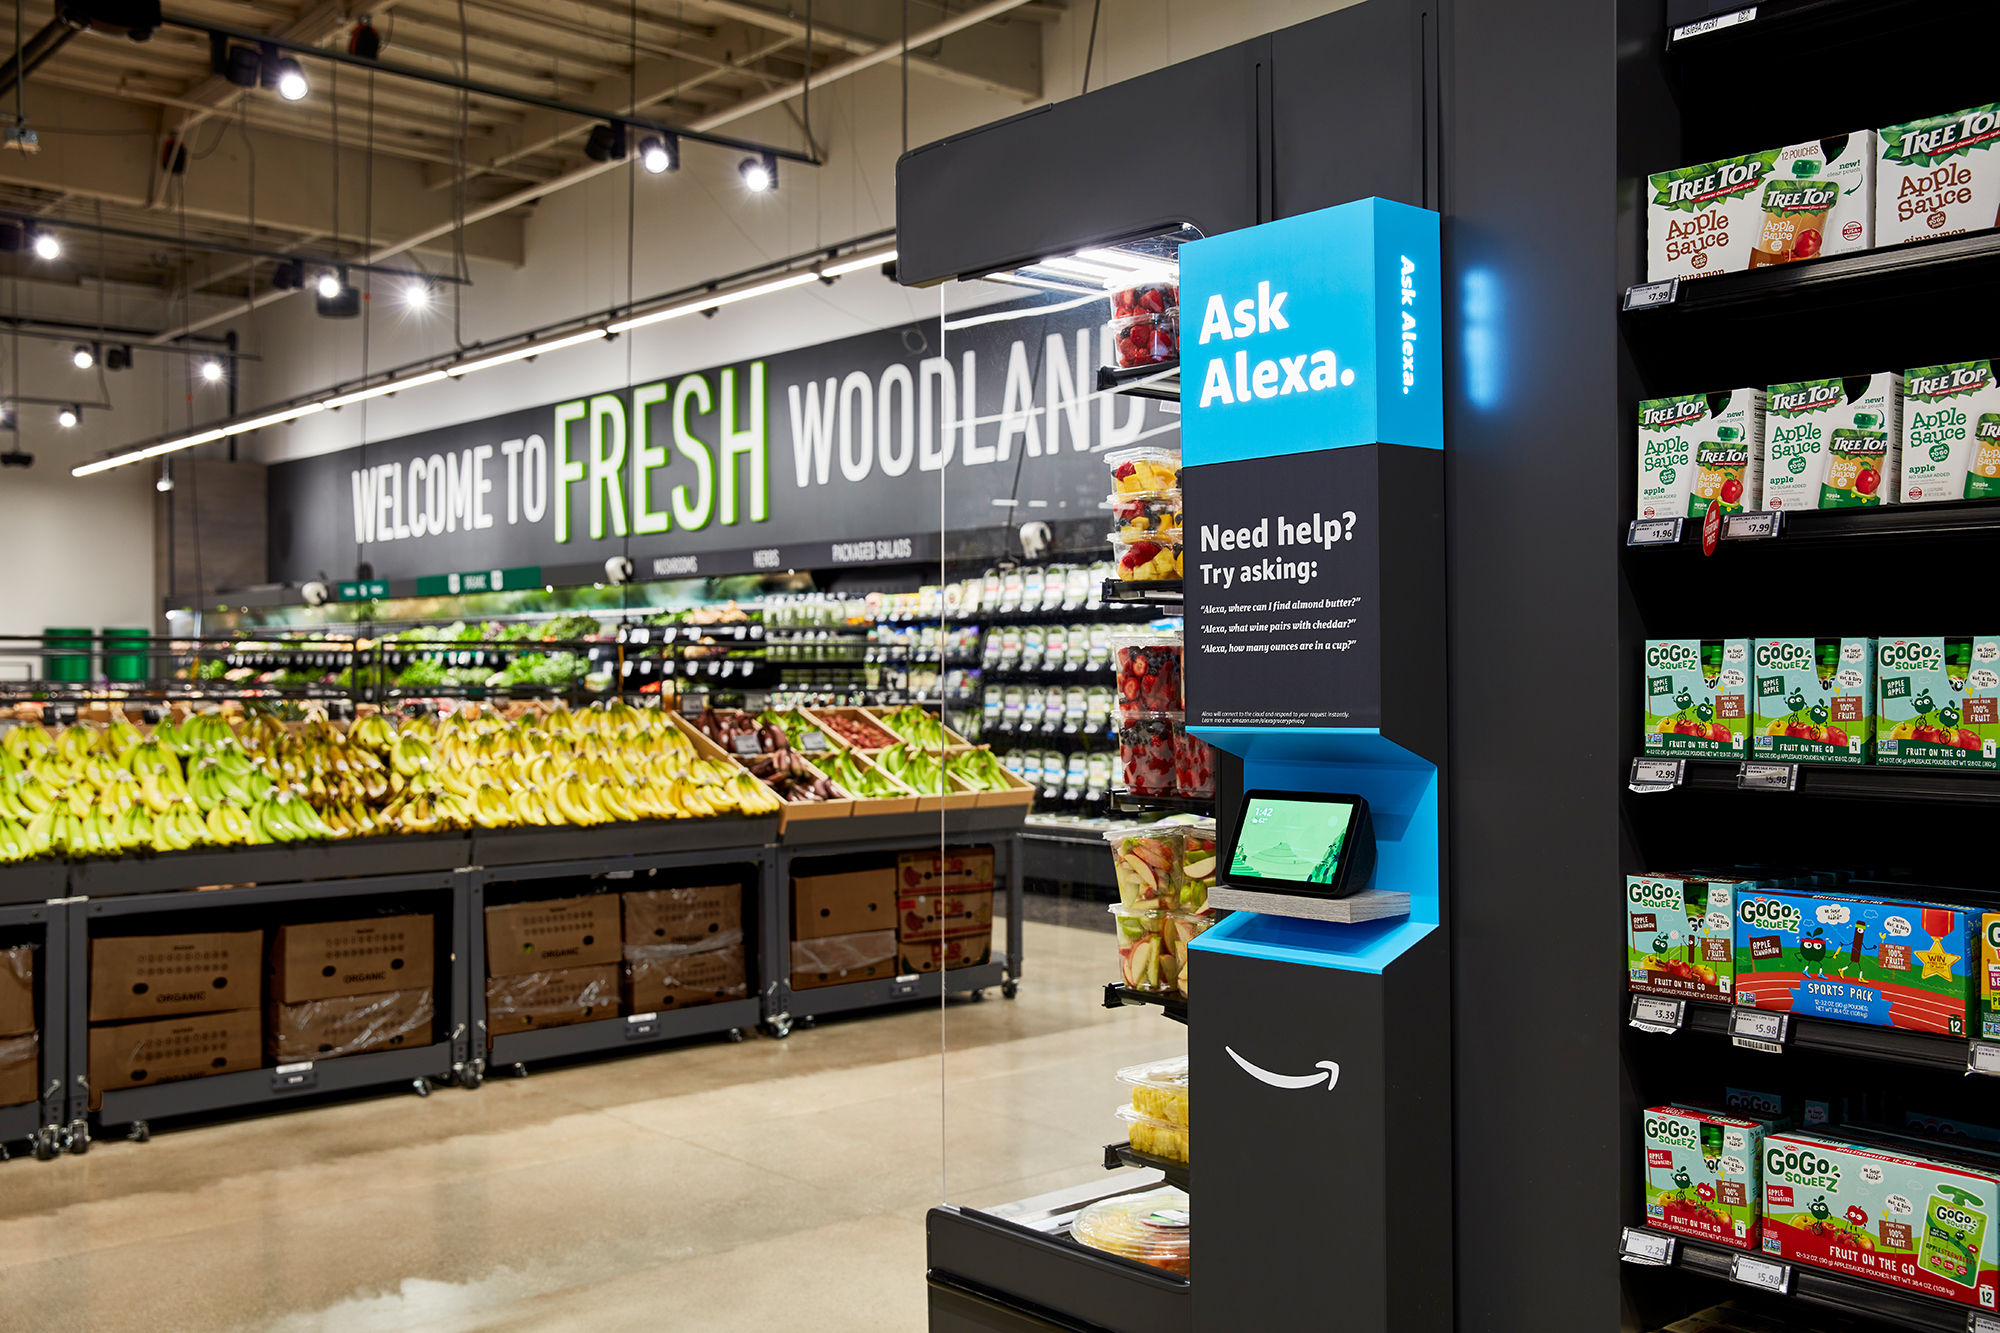 At Amazon's newest grocery store, you can ask Alexa voice assistants where to find milk, scan and check out your groceries using your shopping cart, and pick up books you ordered off the e-commerce giant's website. (Amazon via CNN)